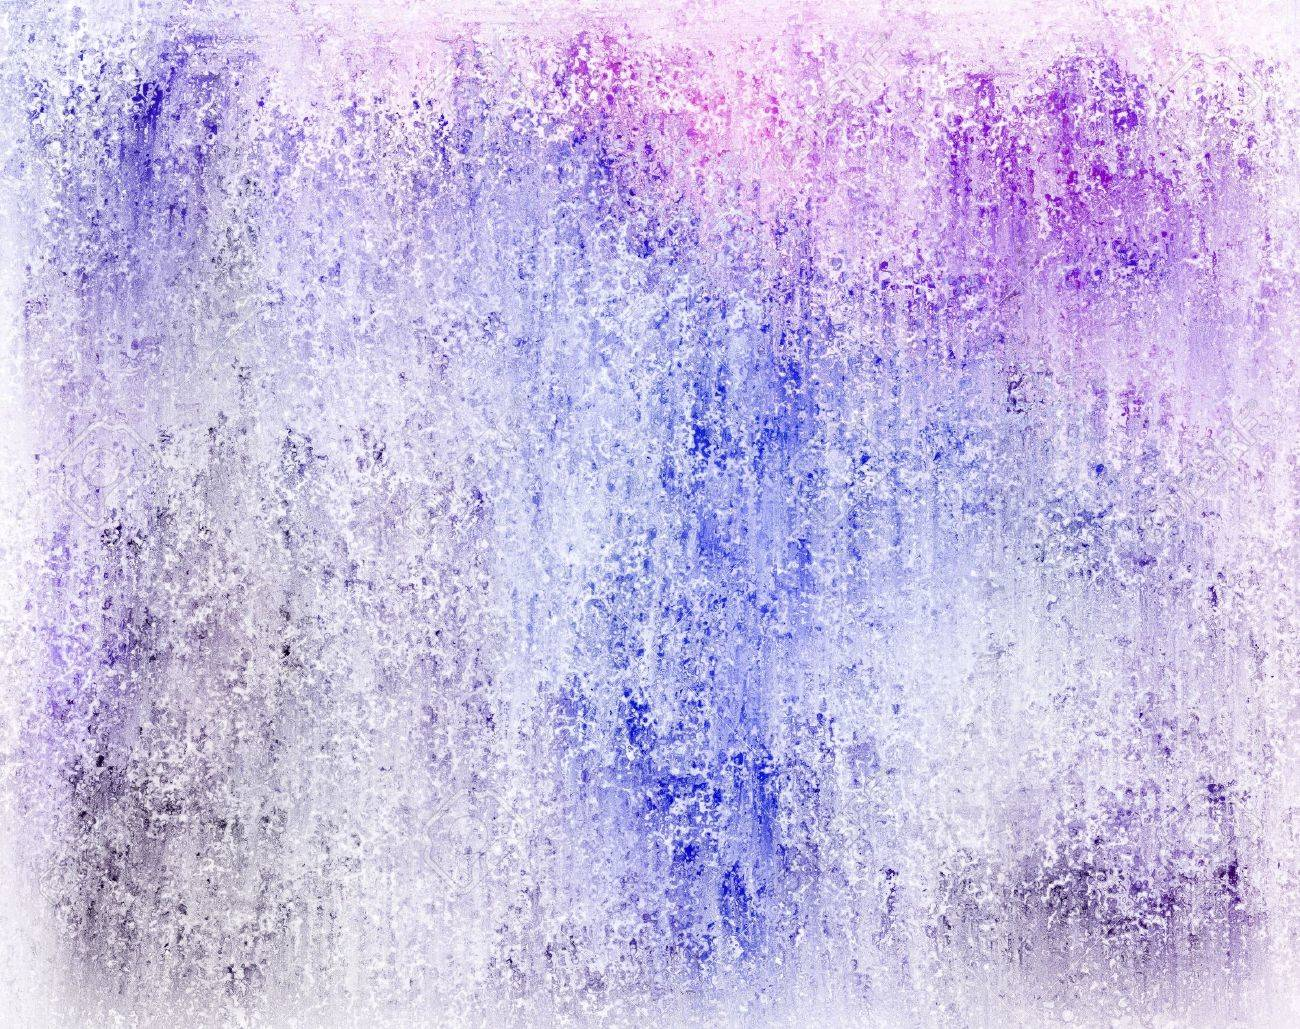 Website soft colors - Stock Photo Abstract Colorful Background With White Vintage Grunge Background Texture Faded With Soft Blotchy Colors Of Blue Purple And Pink In Watercolor